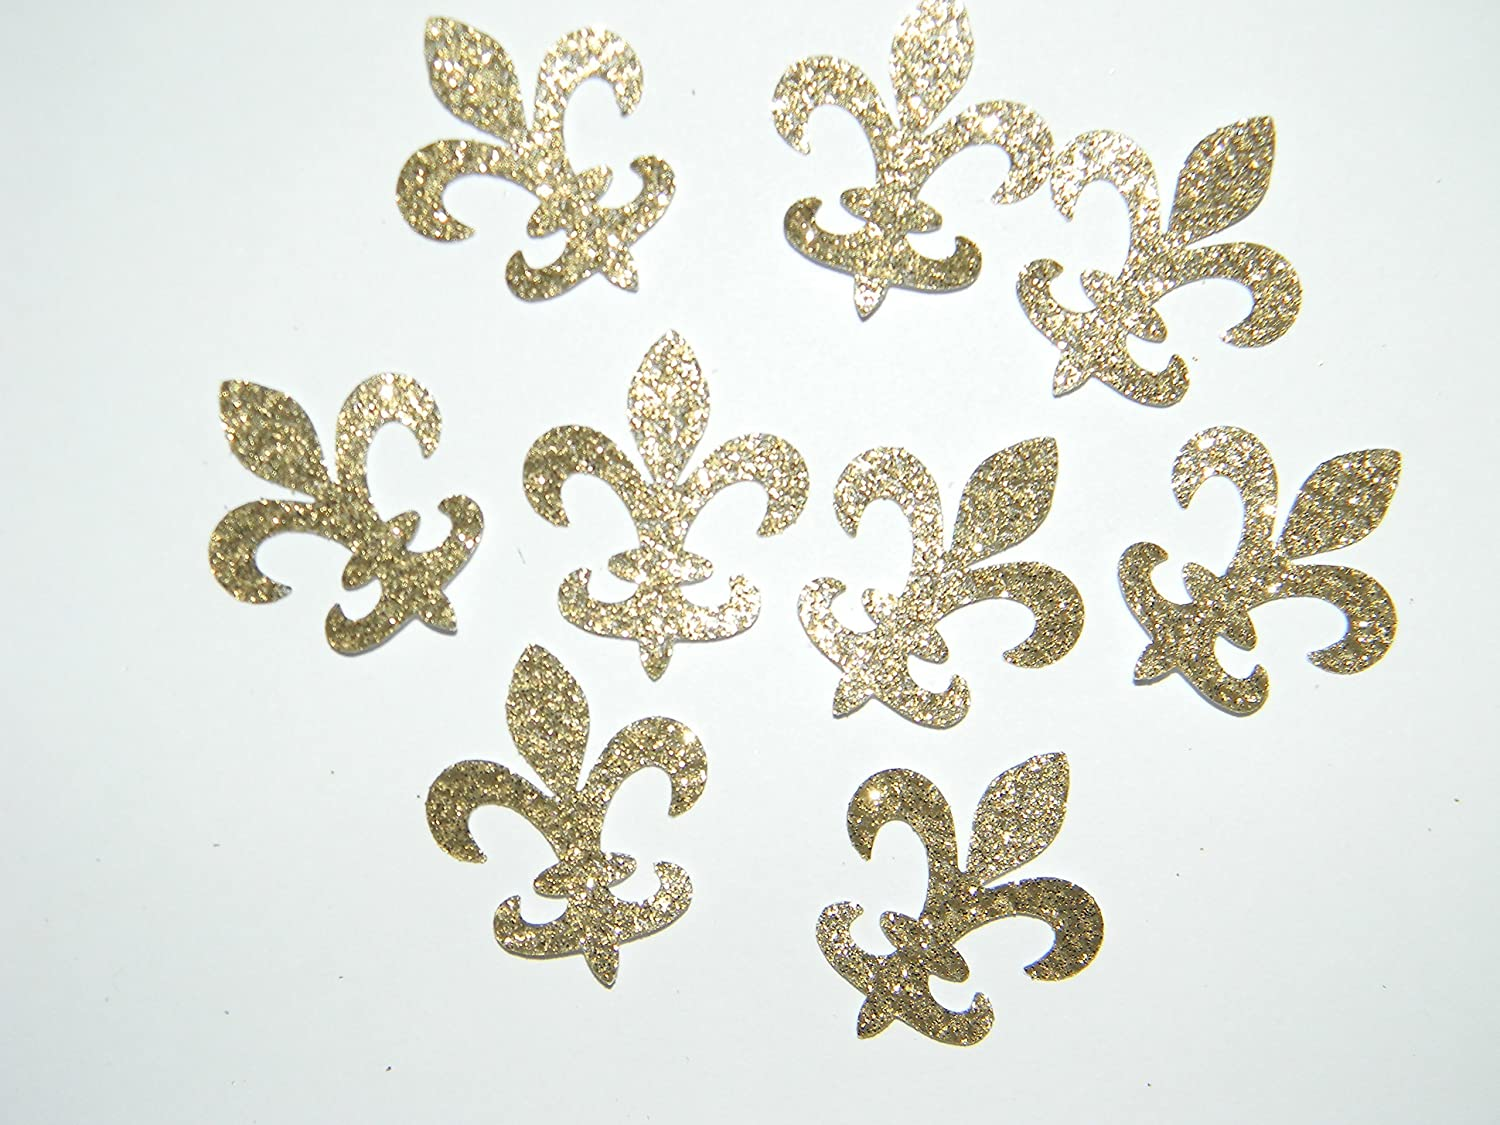 100 gold glitter fleur de lis die cuts confetti party decorations